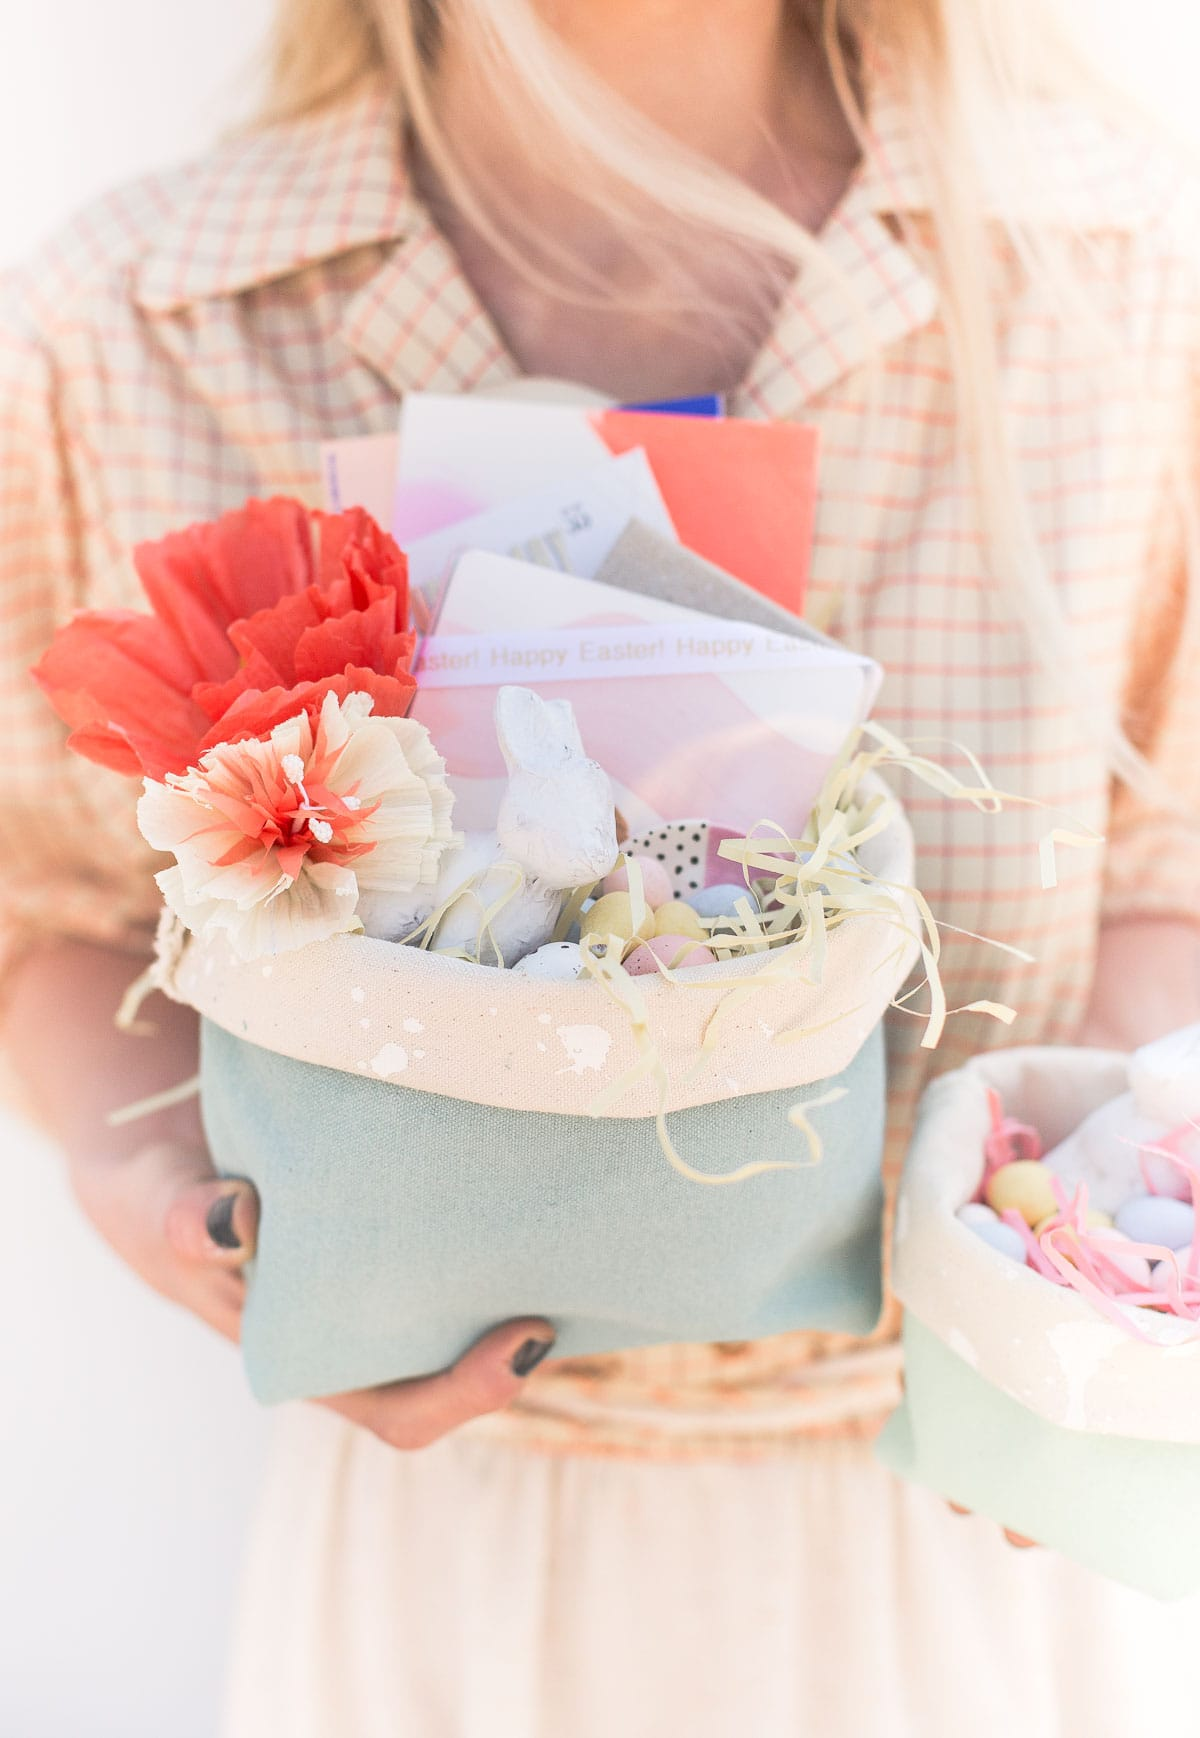 Holding homemade Easter baskets made of canvas, with flowers and candy inside.